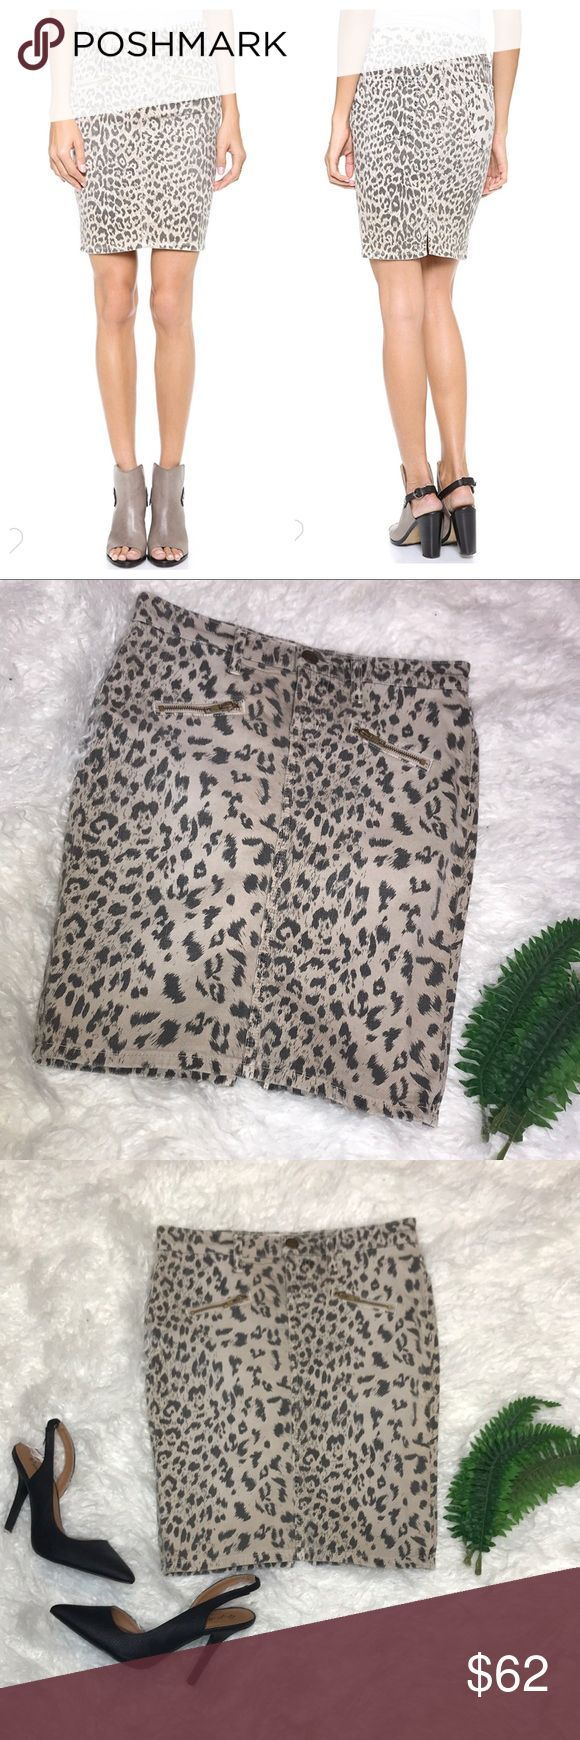 NWT Current/Elliot Soho Zip Stiletto Pencil Skirt Super cute leopard skirt!   NWT - Size 26 (Size 2 based on their size chart)  98% Cotton 2% Elastane Current/Elliott Skirts Pencil